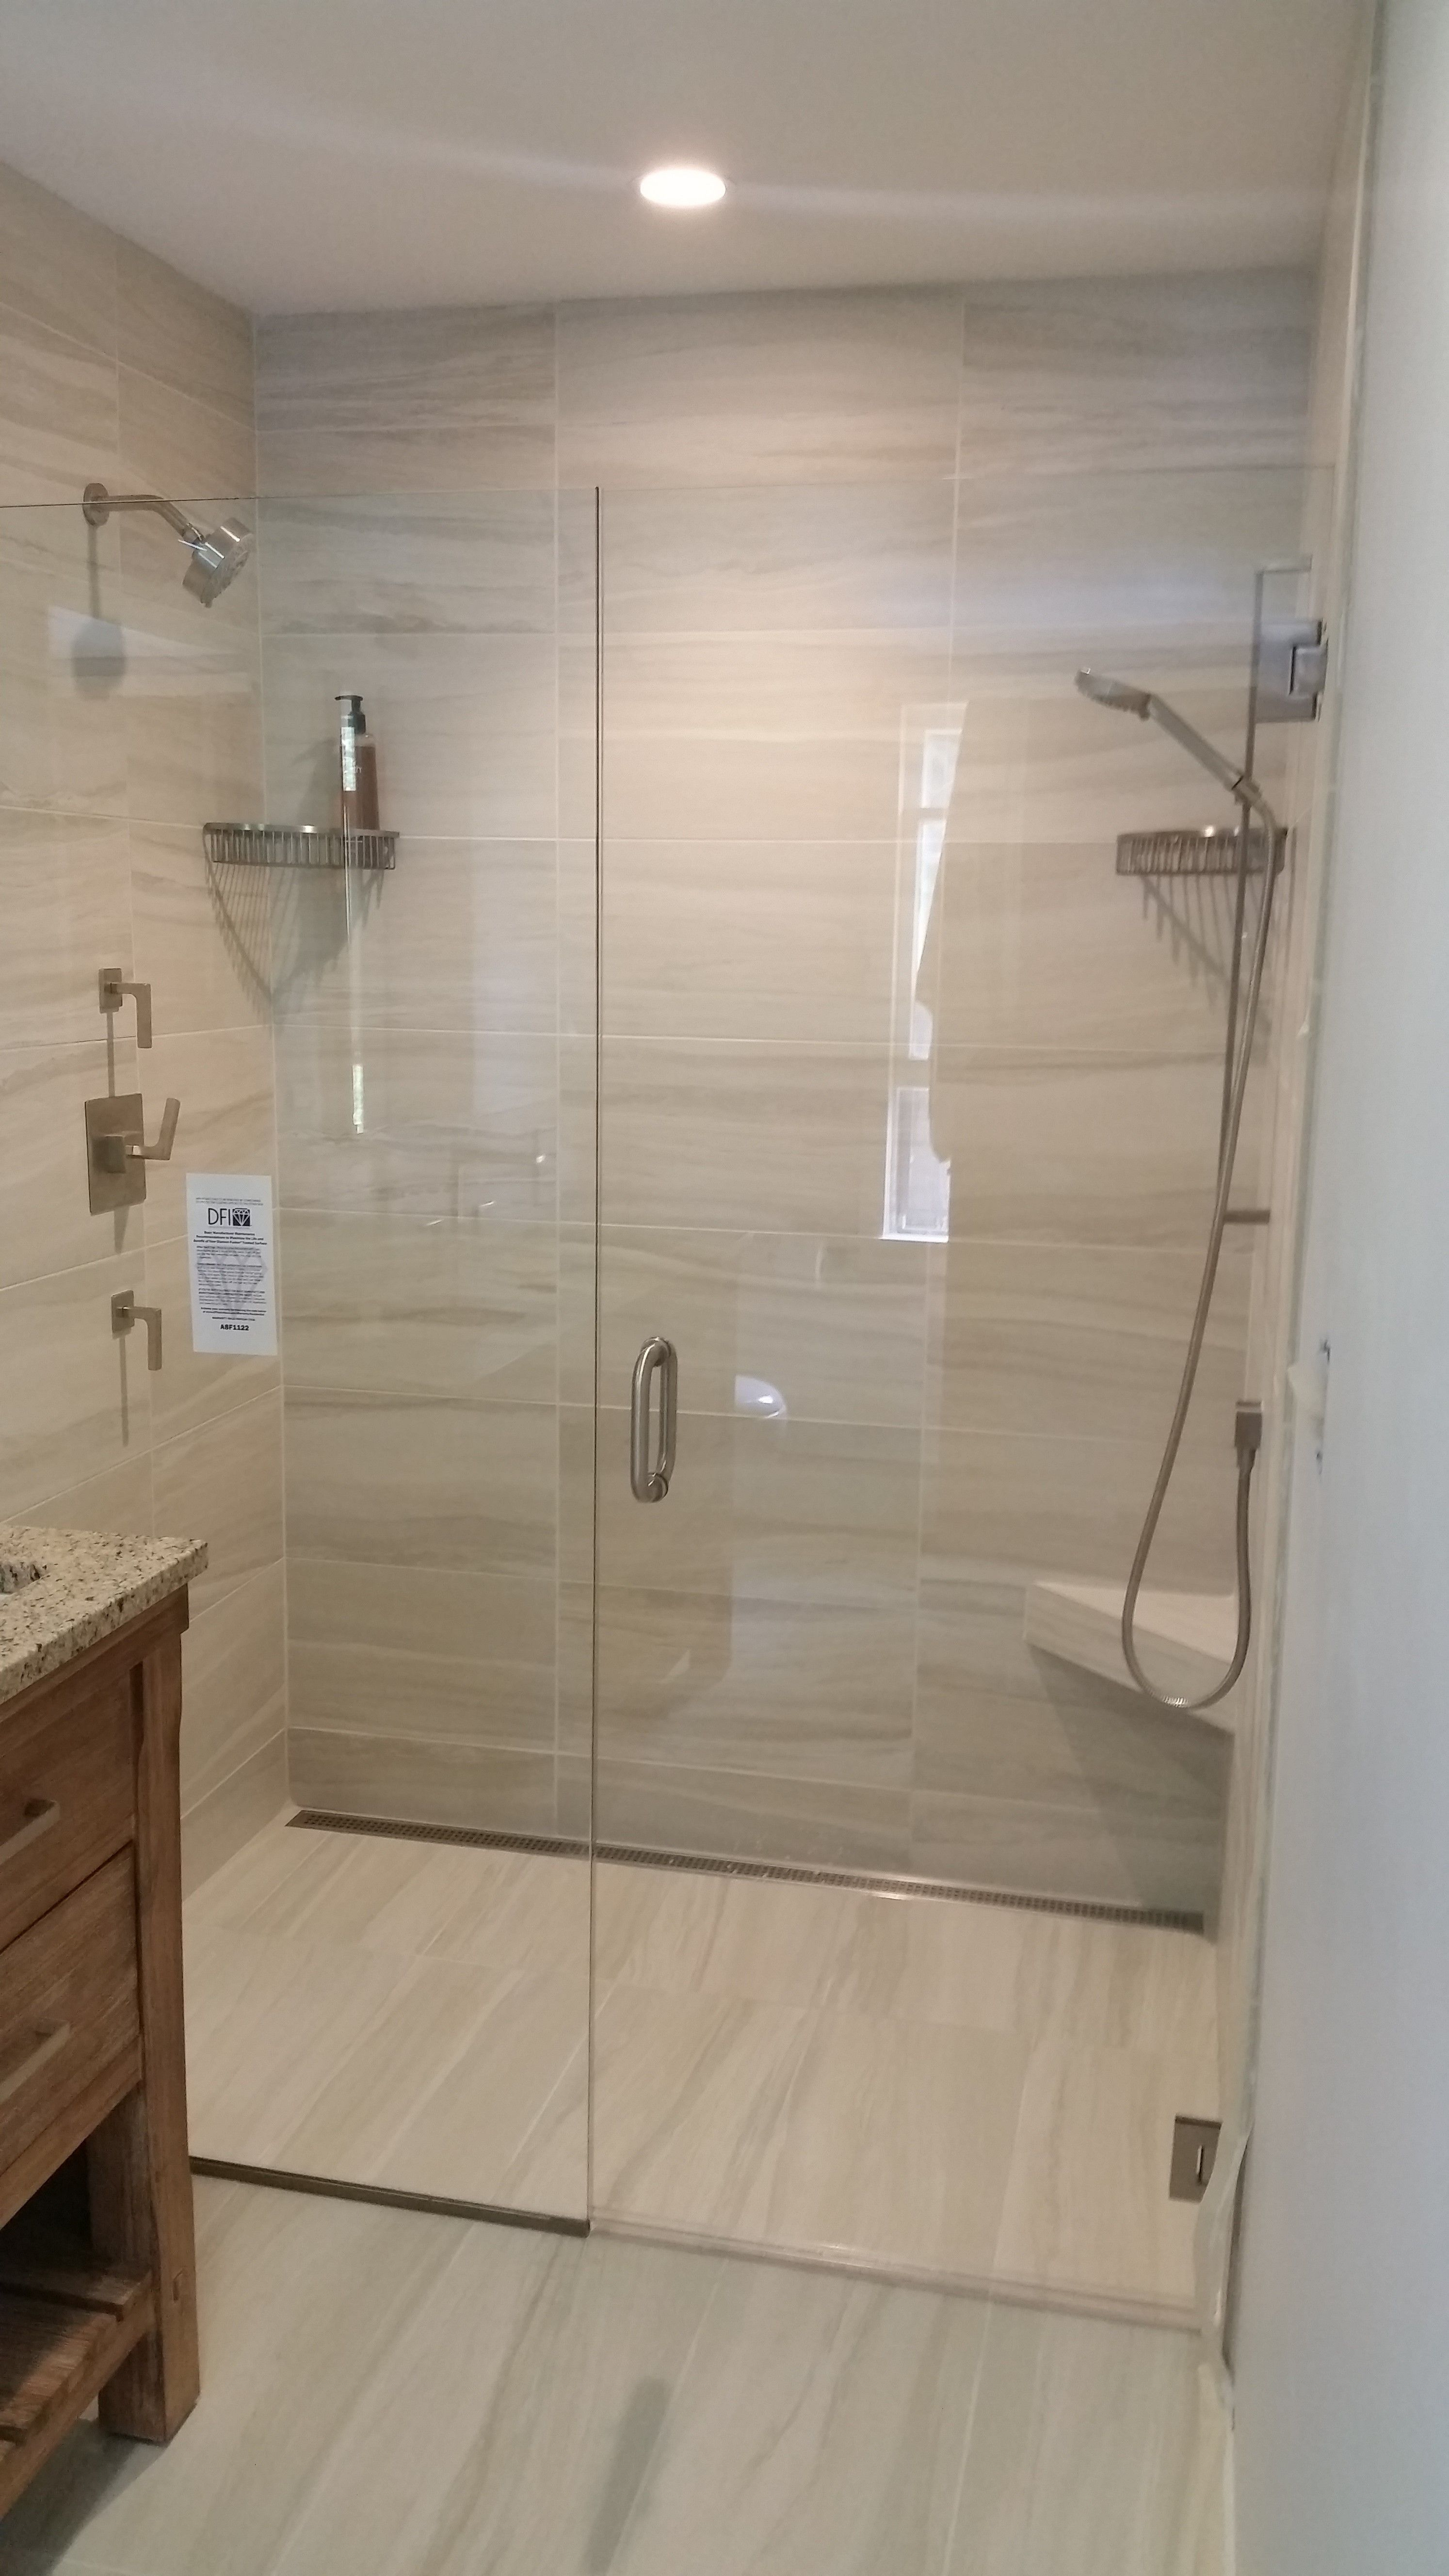 Curbless Shower Installation By Valley Floors Bathroom Ideas Pinterest Shower